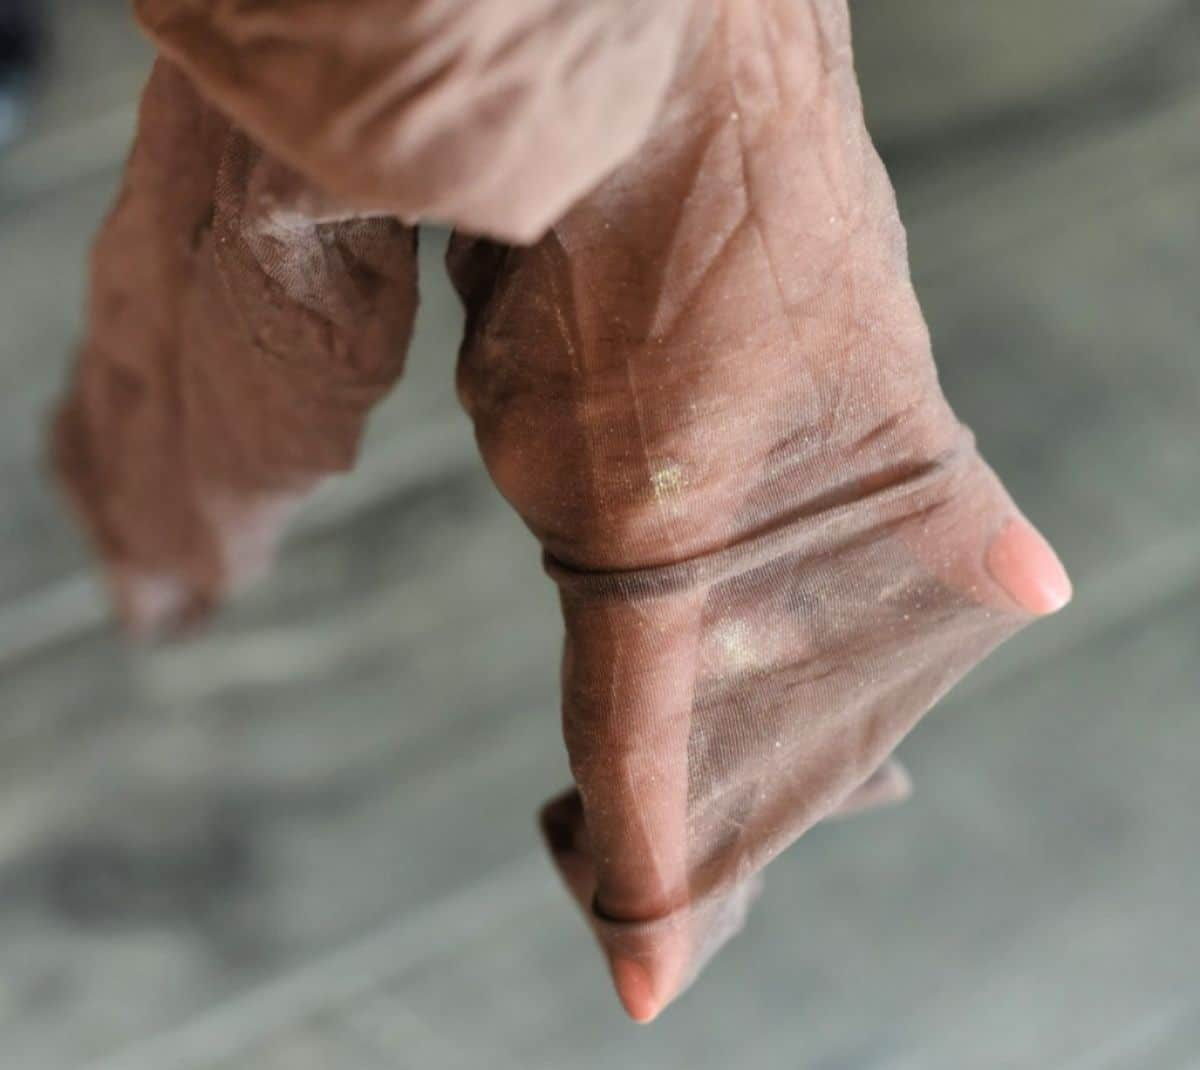 a hand is pushing to the bottom of a leg of pantyhose